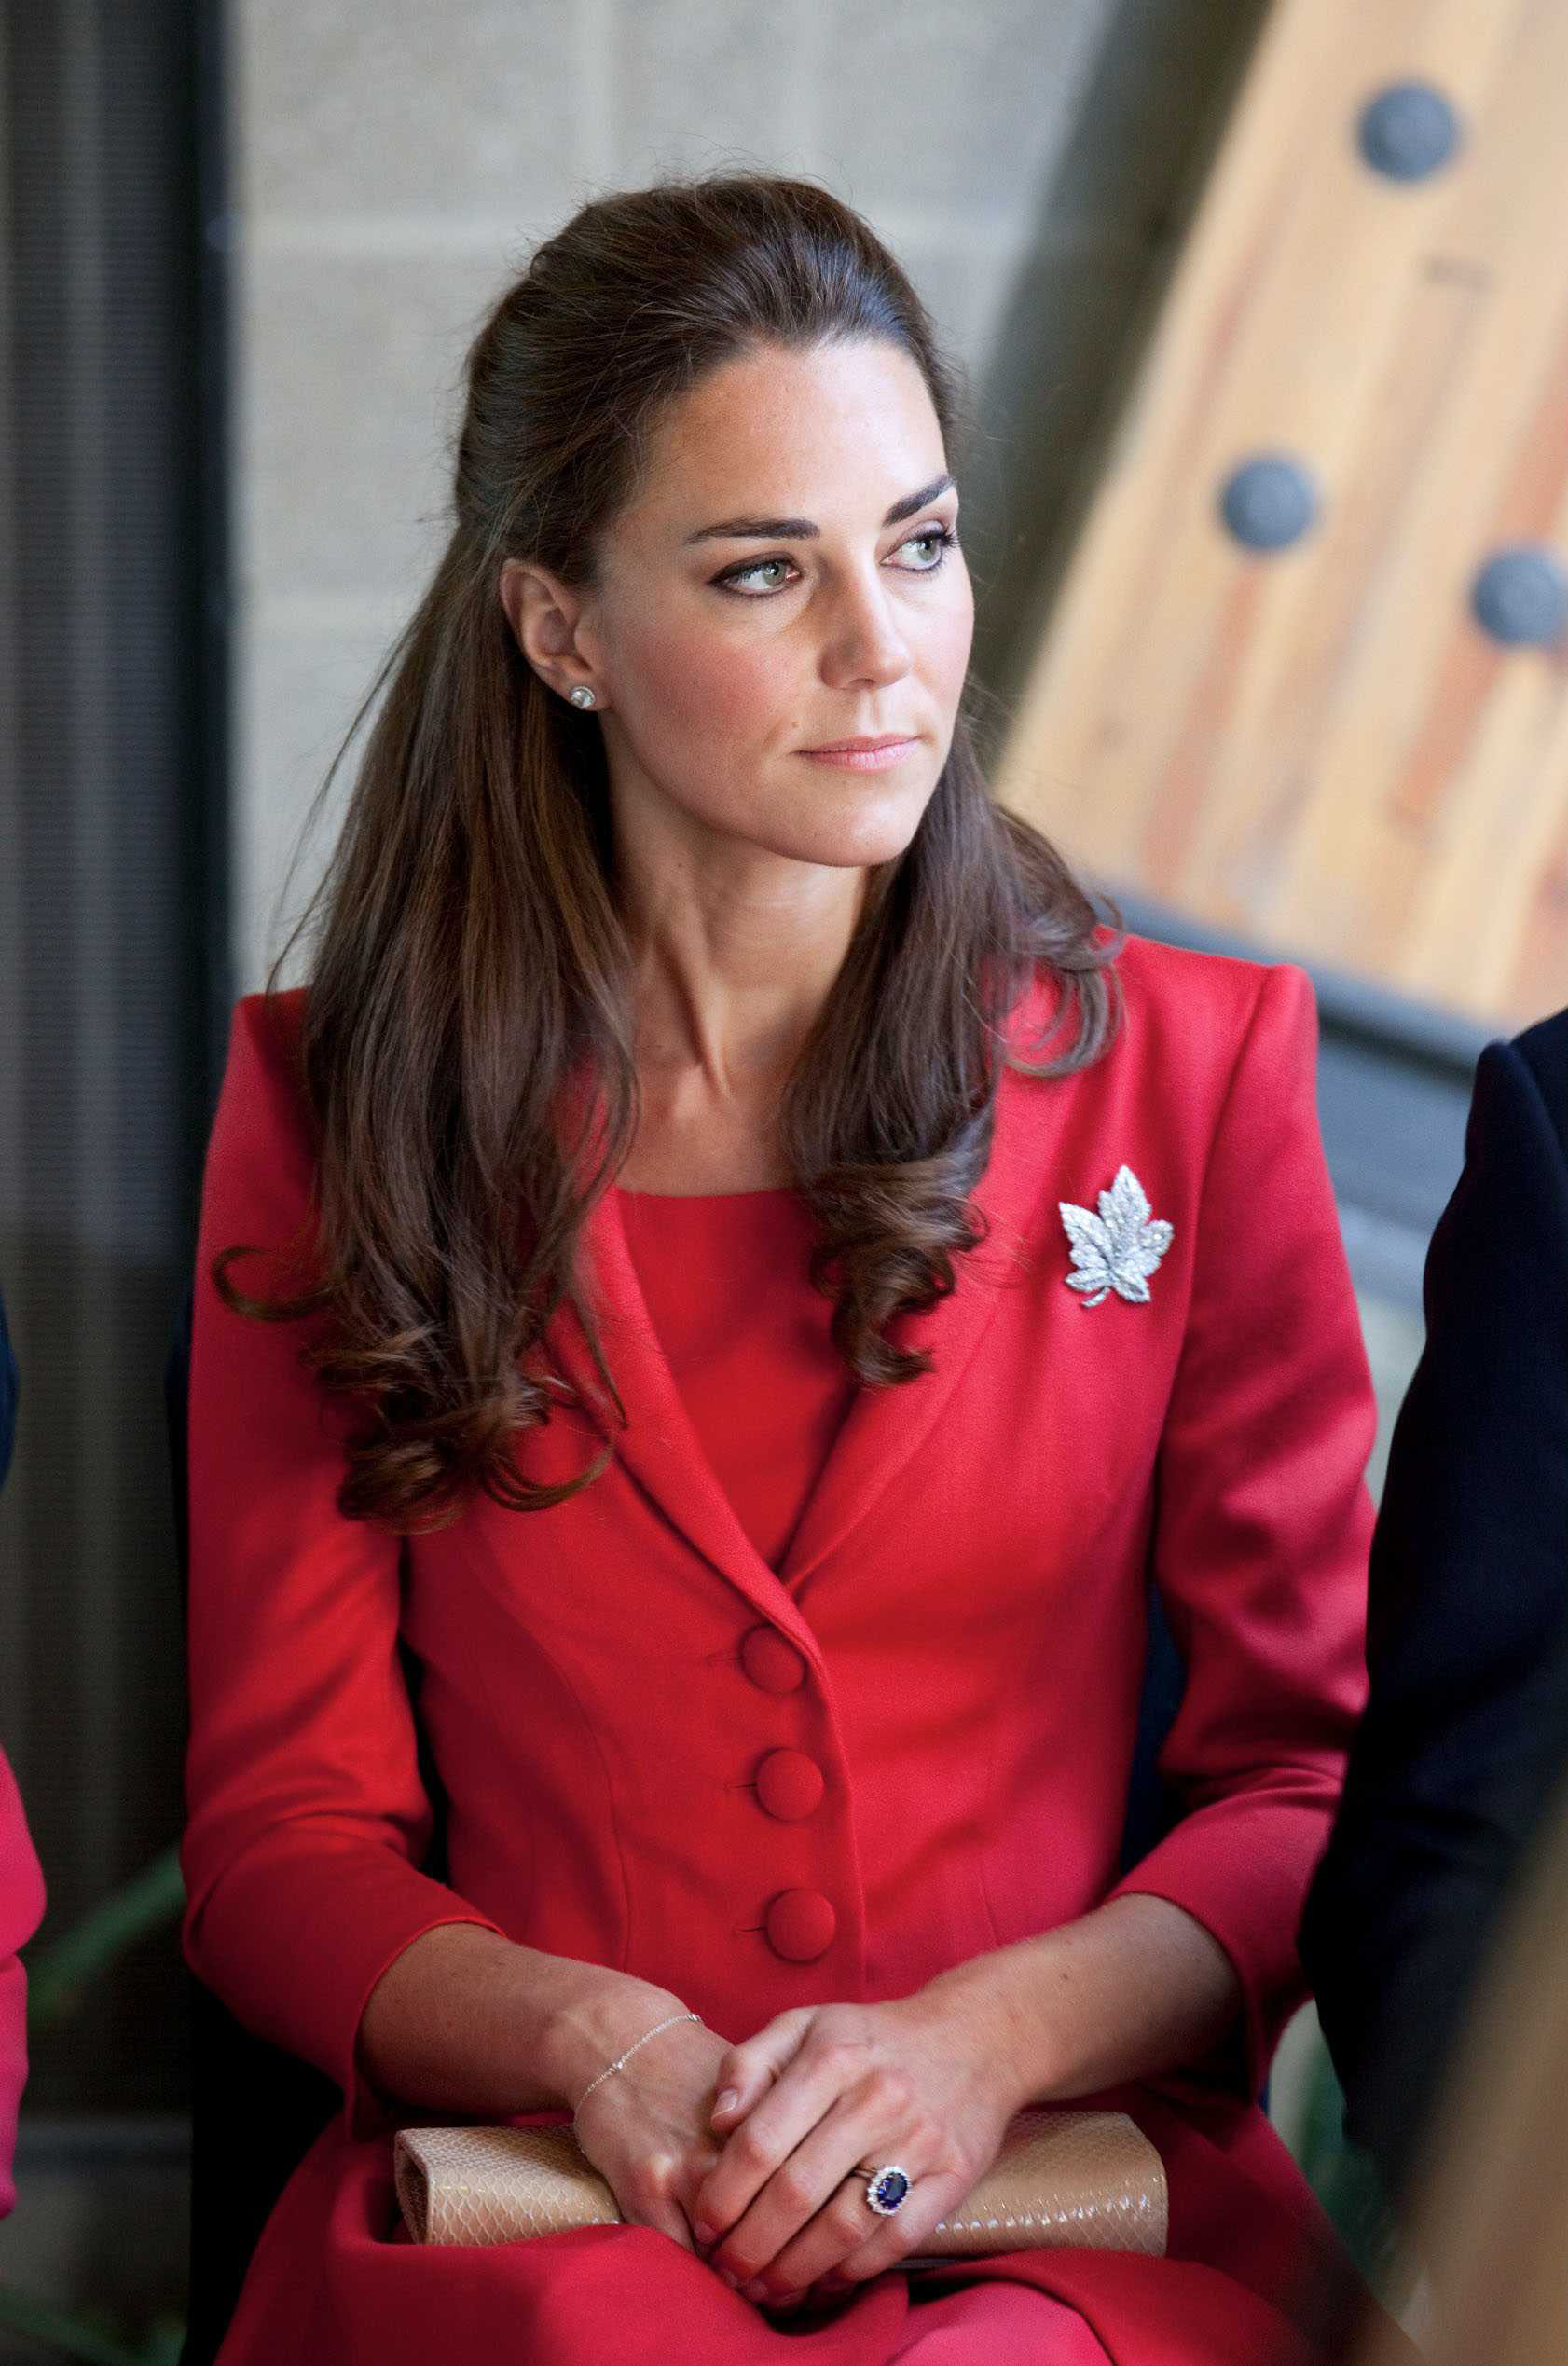 <strong>Lady in Red</strong>                                   On the final day of the Canadian leg of her North American tour, Middleton chose a red suit set, adorned with a maple-leaf brooch. The silver accessory and red outfit were a tribute to Canada's flag.